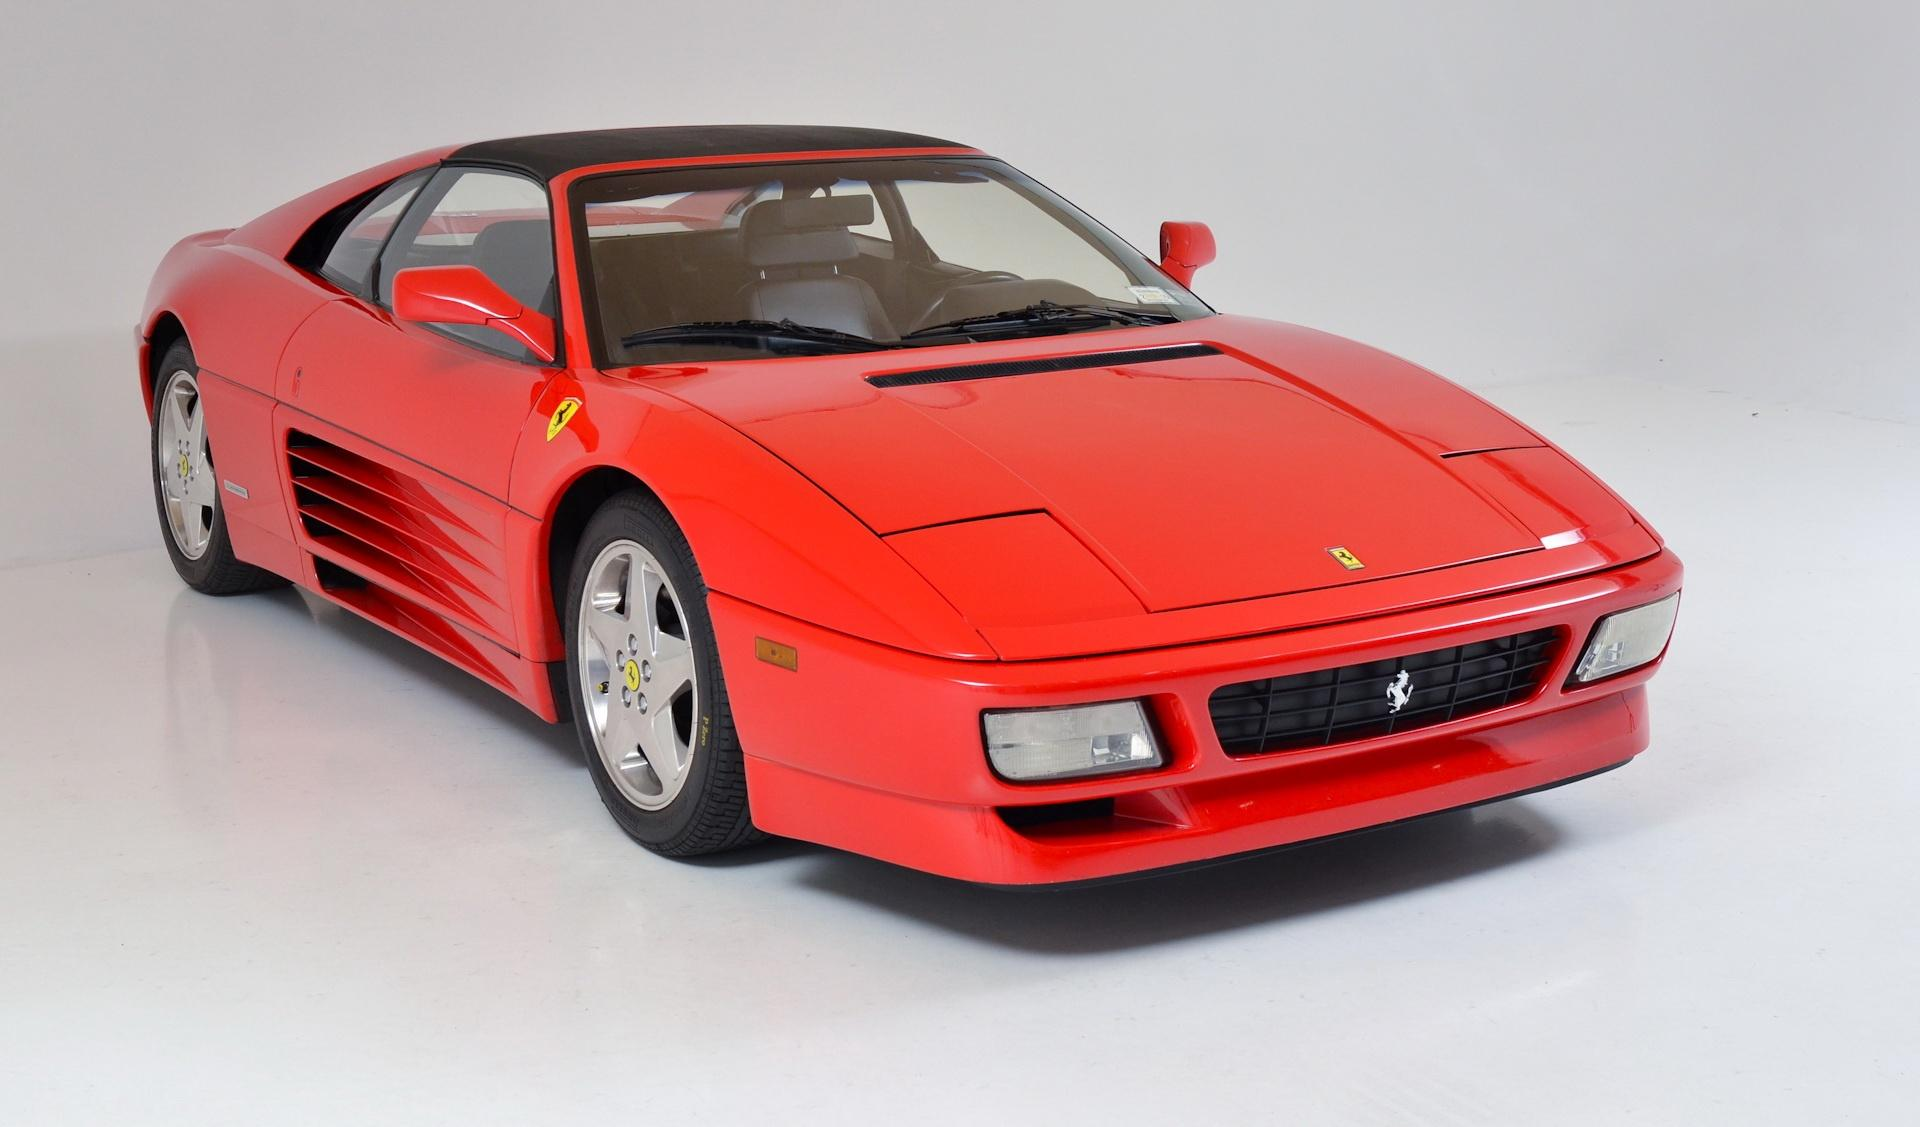 1990 ferrari 348 ts - exotic and classic car dealership